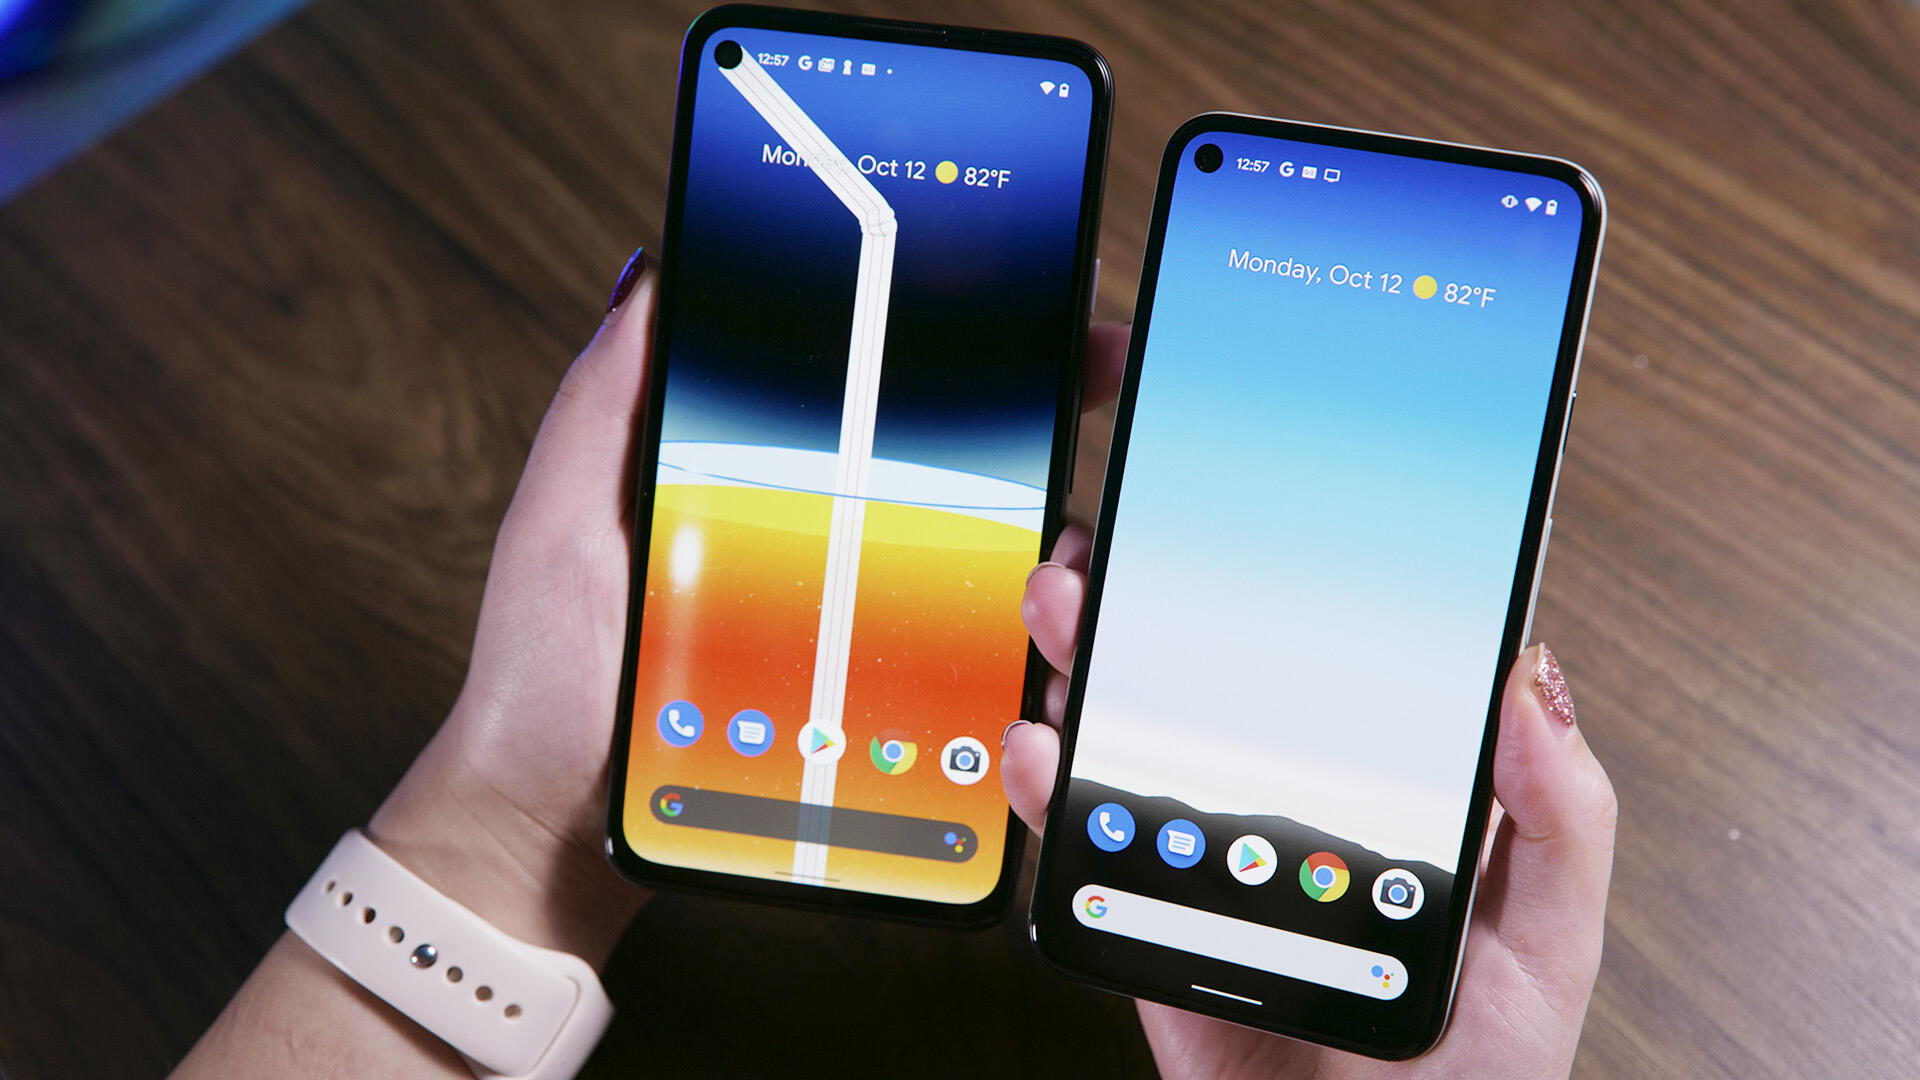 Video: Pixel 5 and 4A 5G review: Superb cameras, now with 5G